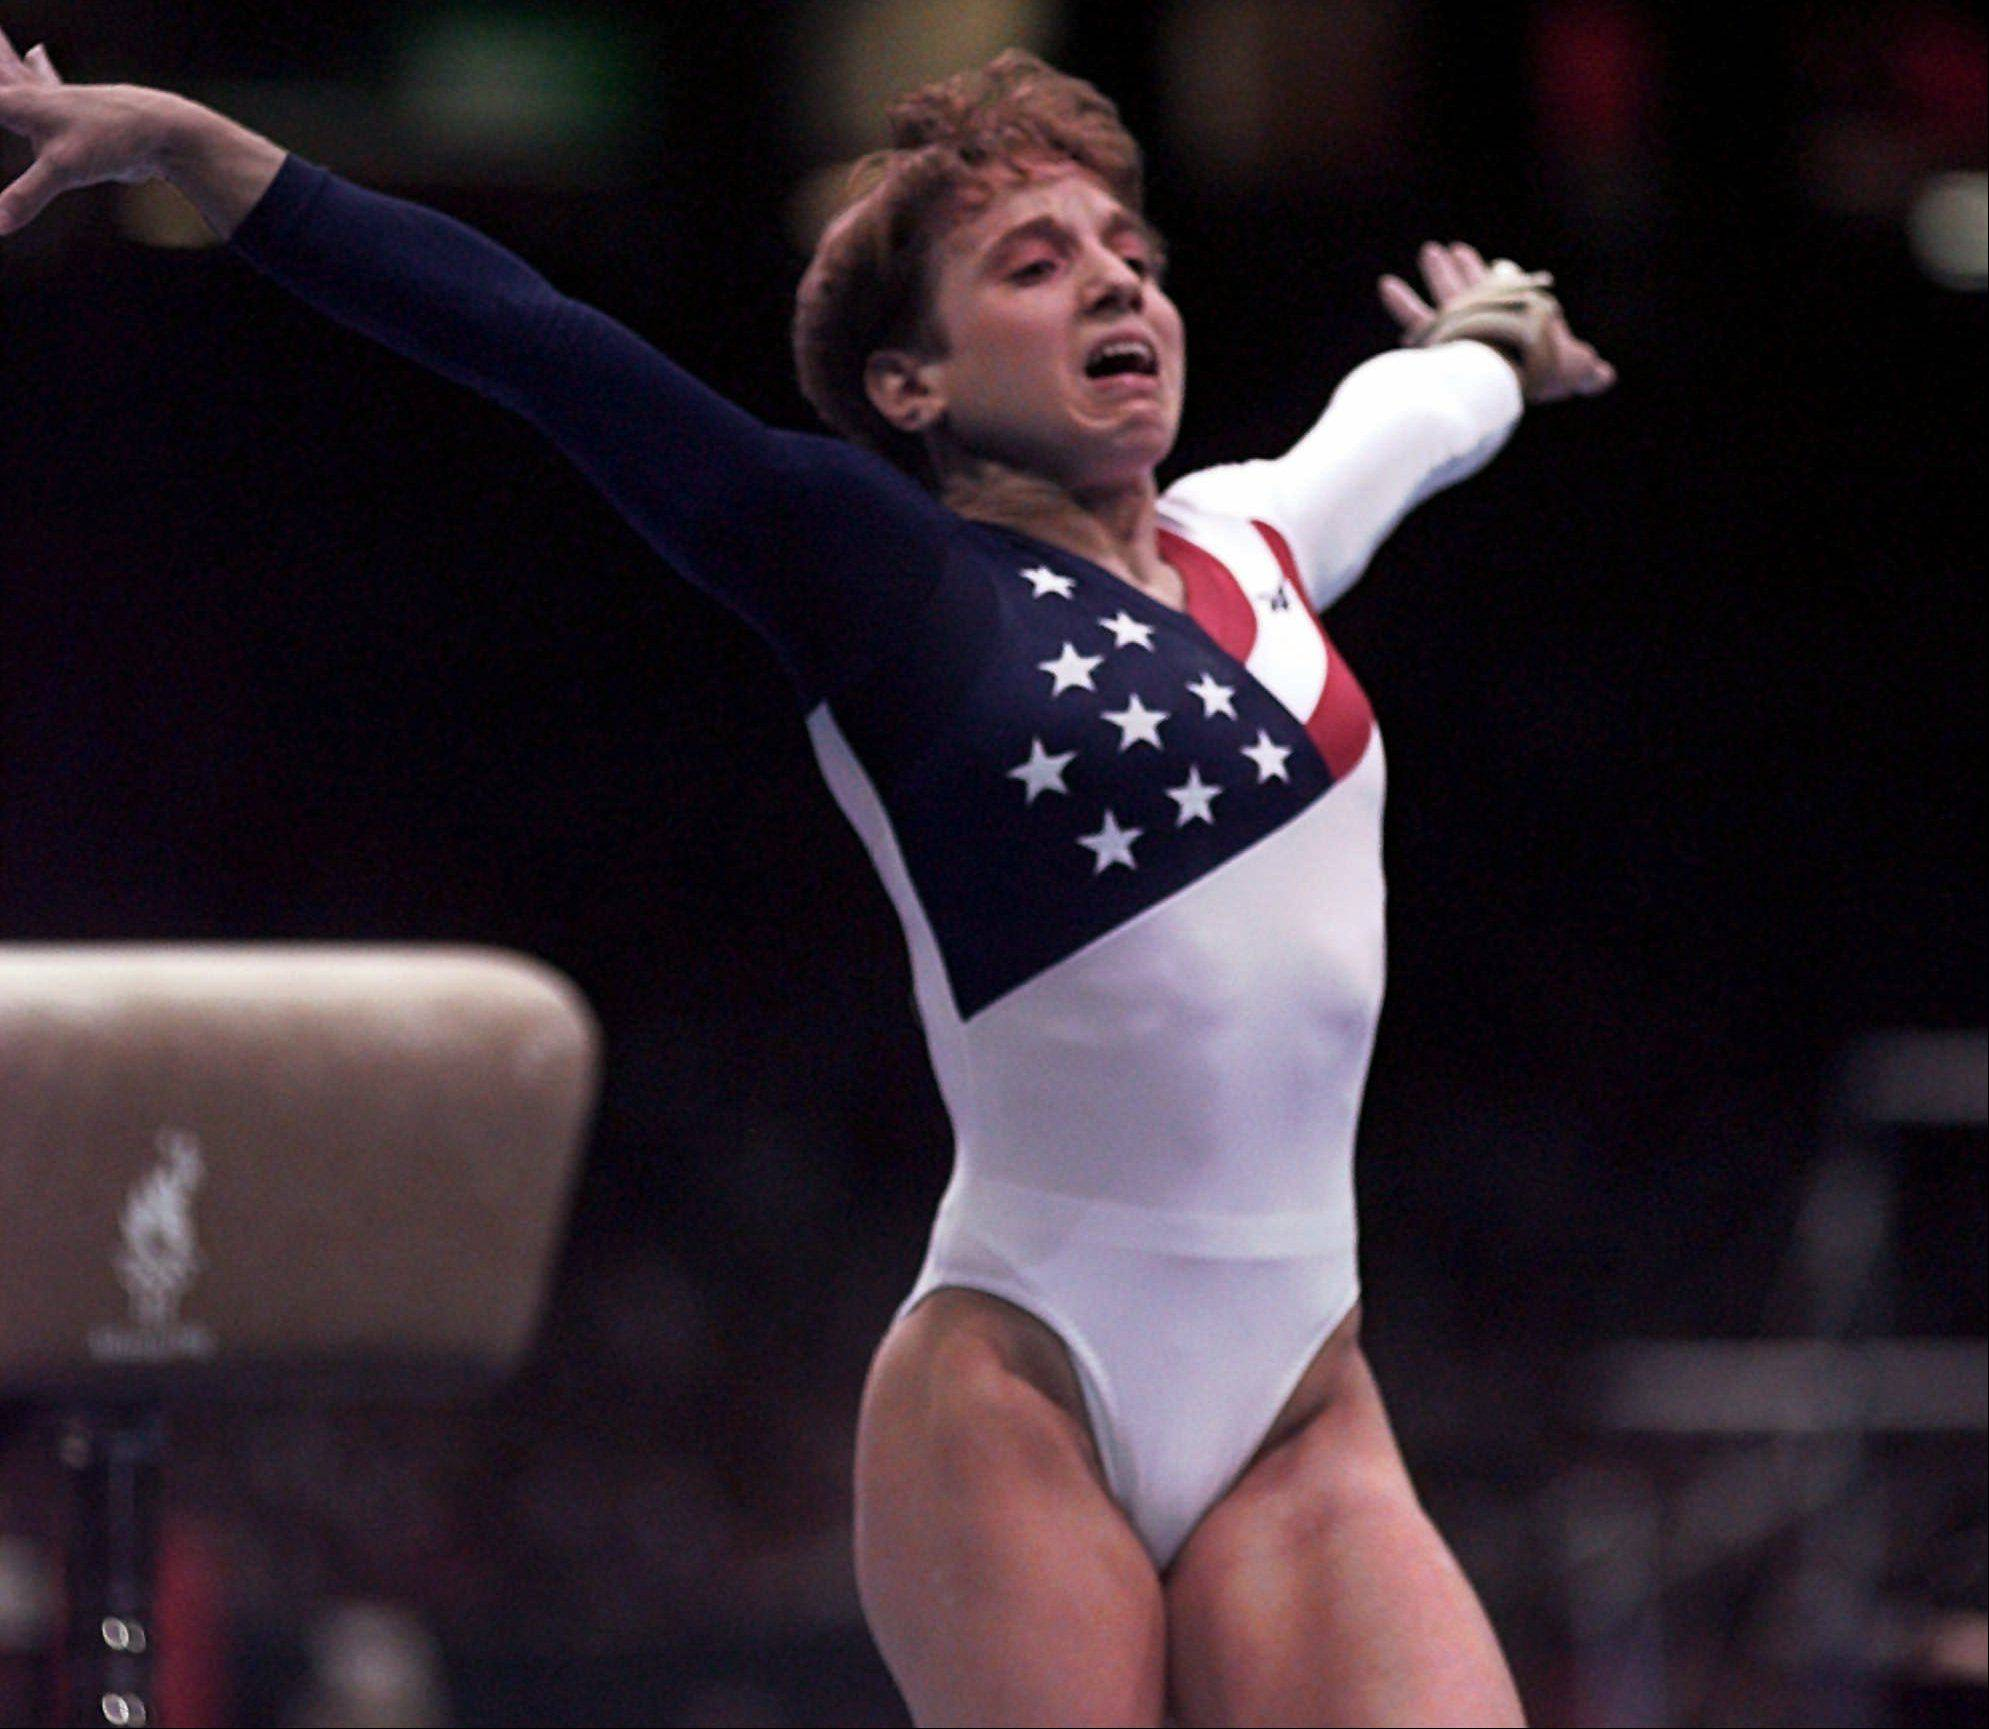 Kerri Strug, of Houston, Texas, reacts after badly landing on her left leg following her vault routine at the women's team gymnastics competition at the Centennial Summer Olympic Games in Atlanta on Tuesday, July 23, 1996.